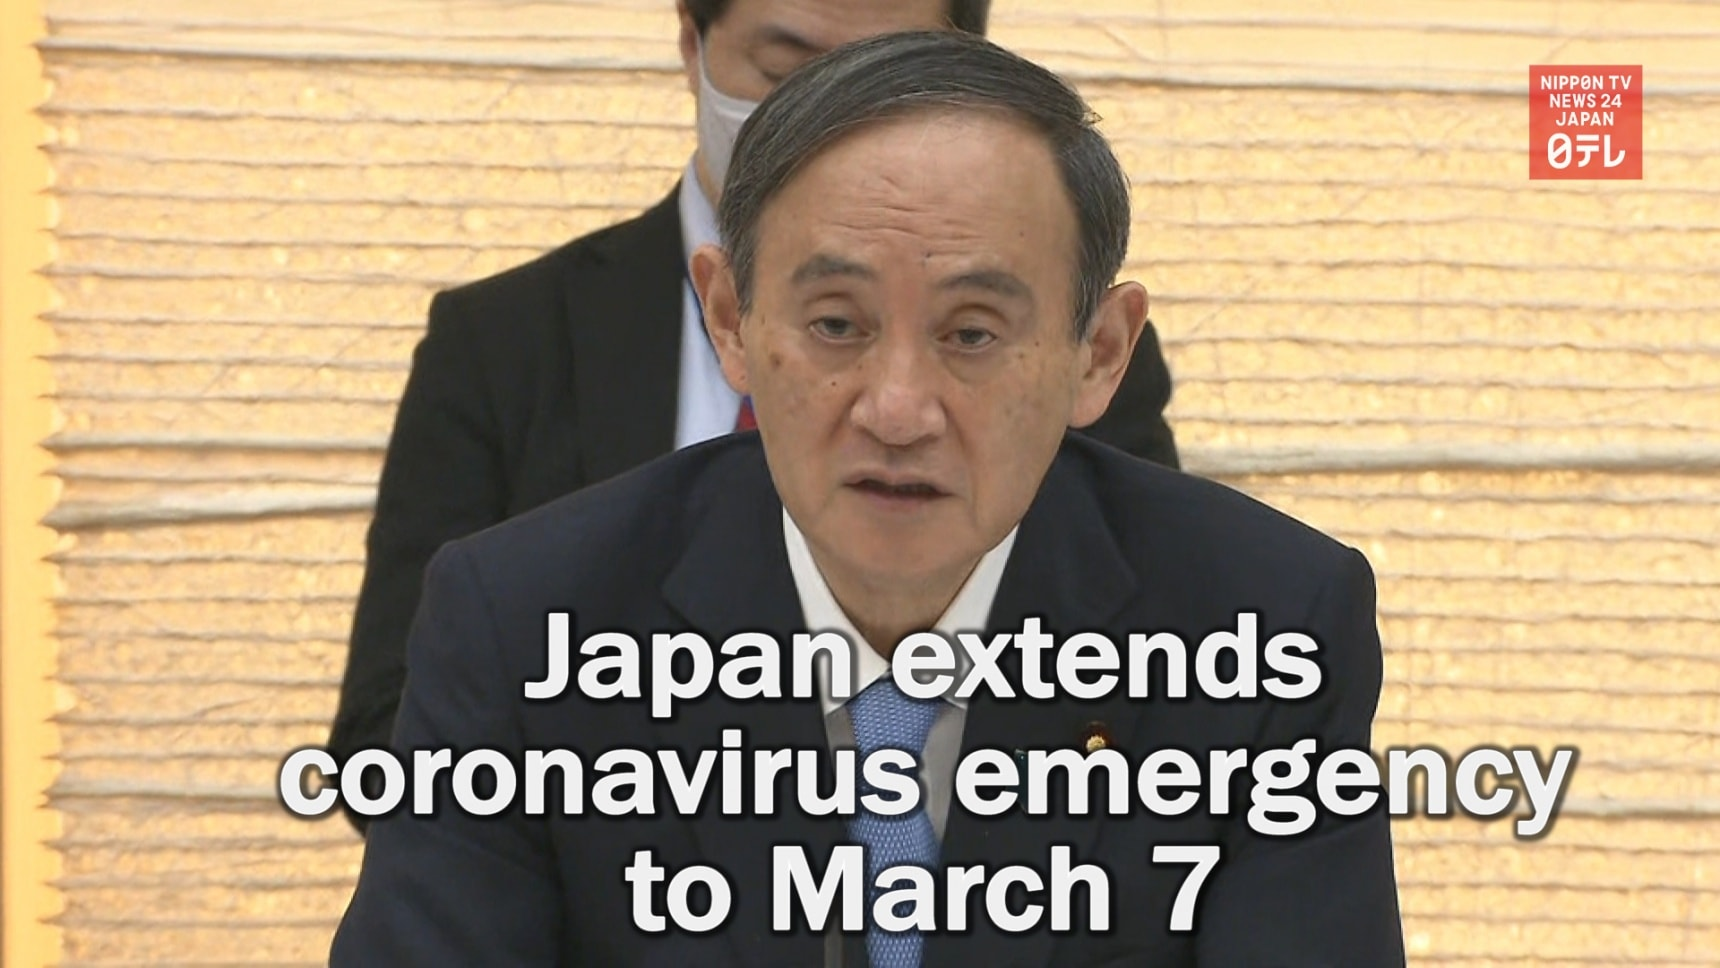 Japan Extends Coronavirus Emergency to March 7